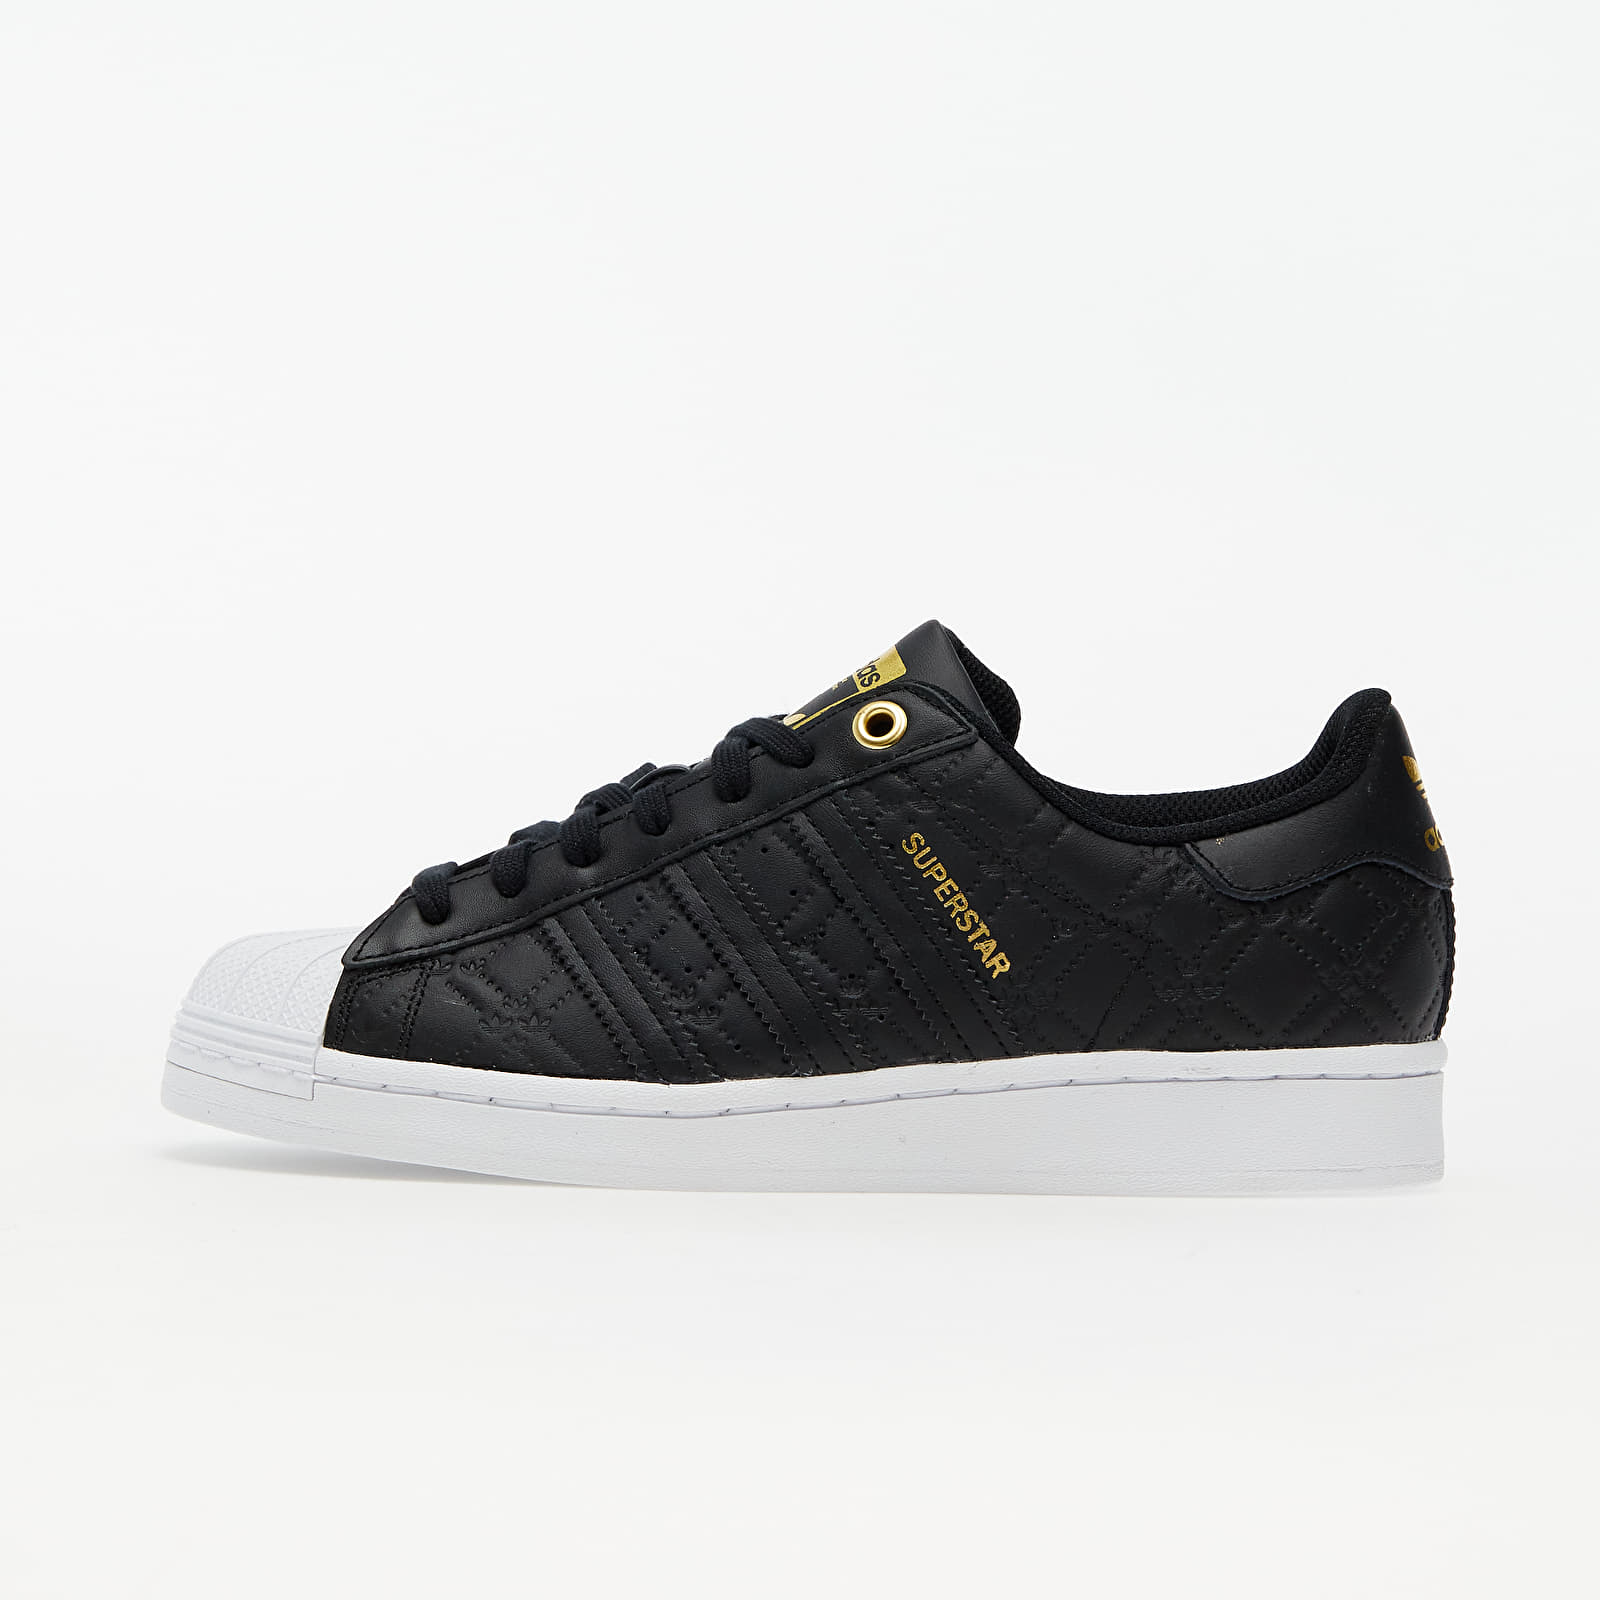 adidas Superstar W Core Black/ Gold Metalic/ Ftw White EUR 38